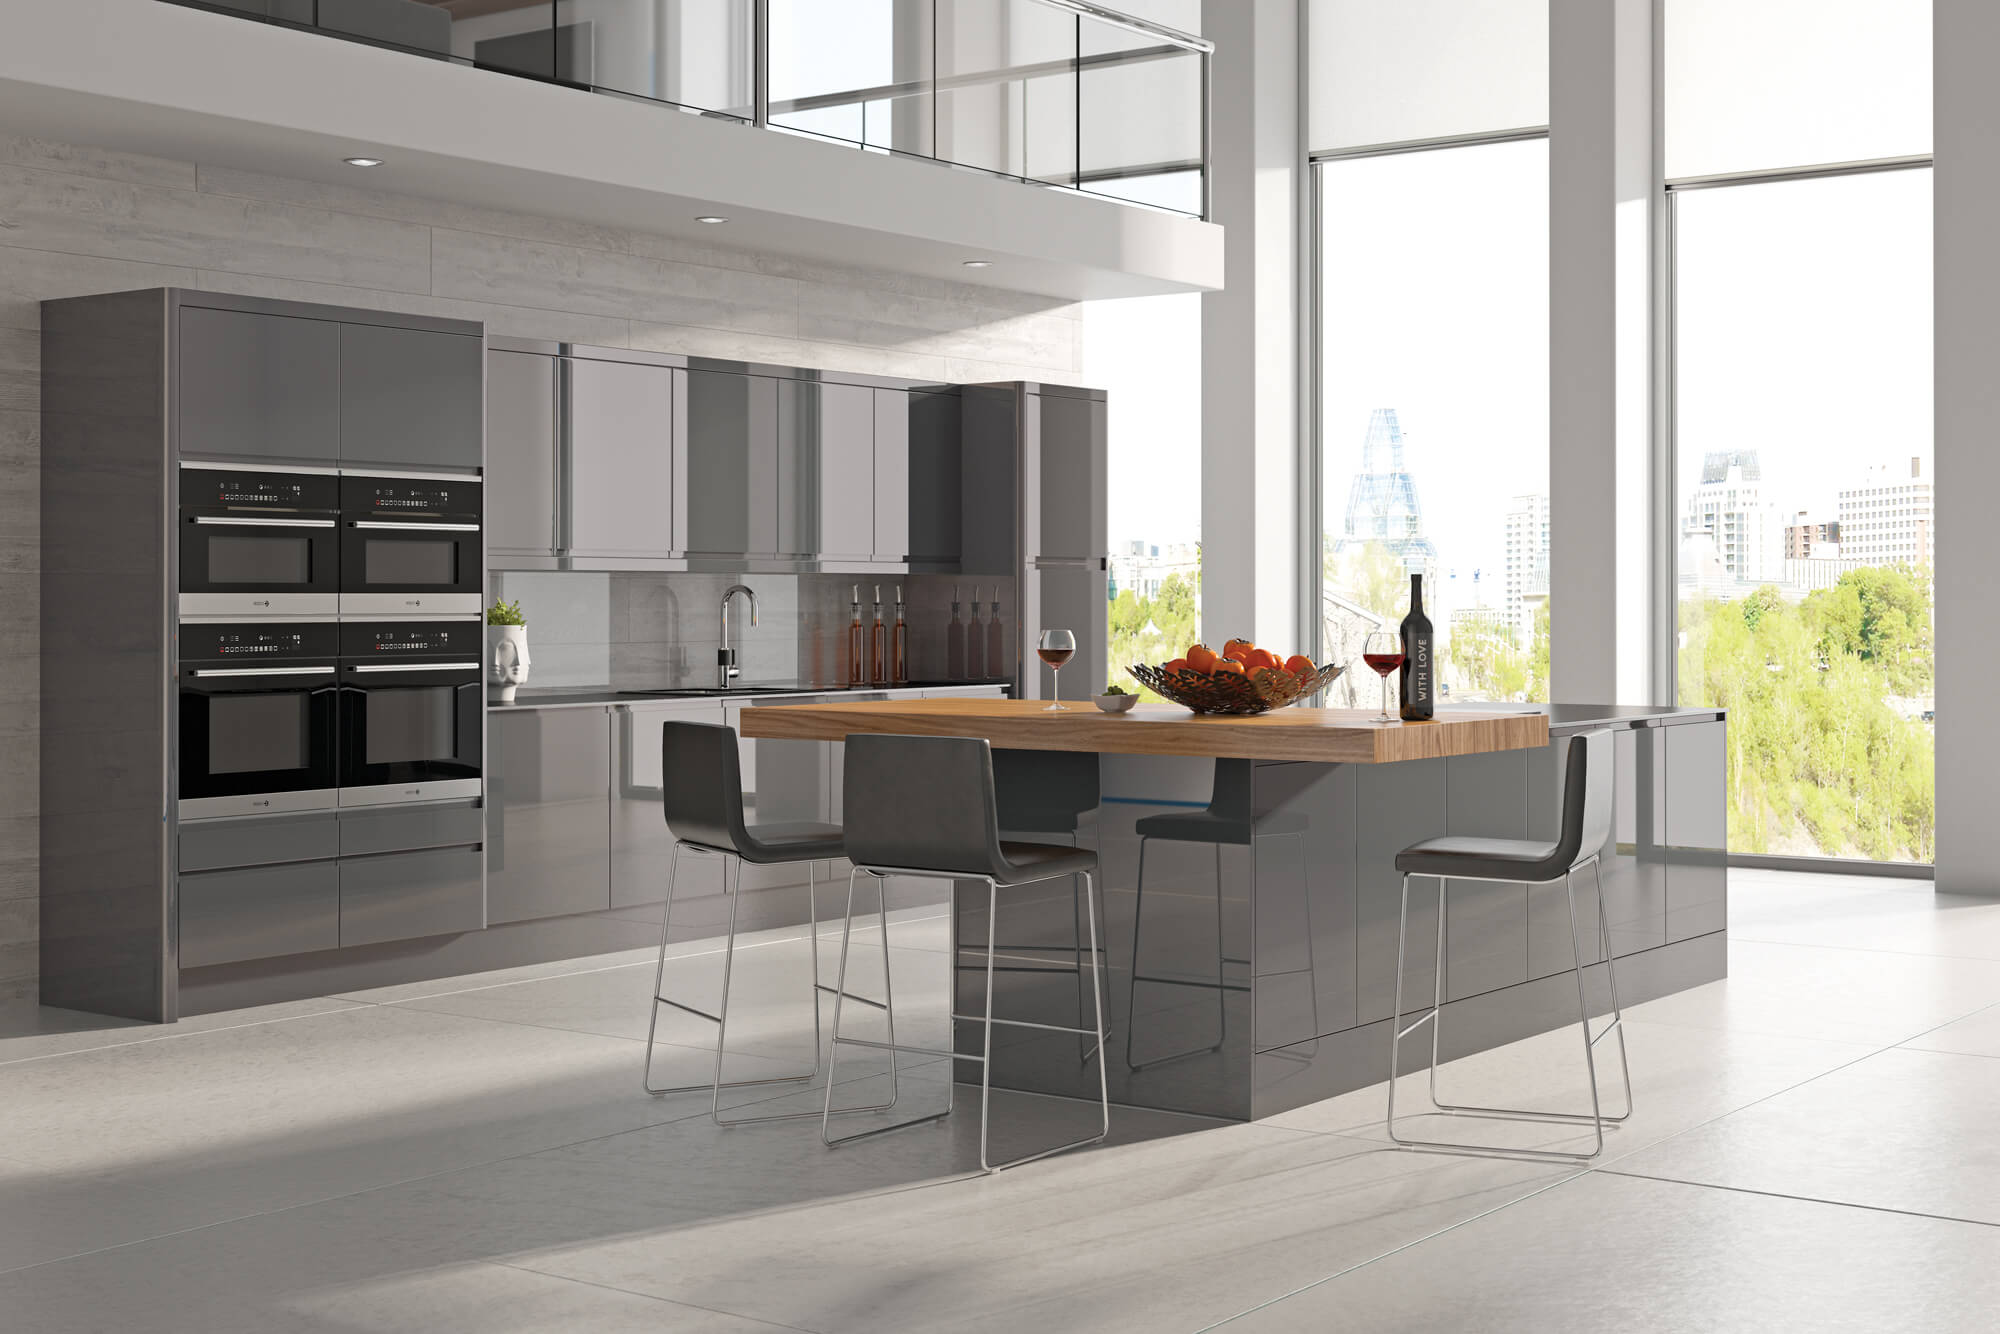 kitchen designer sheffield designer kitchens in sheffield get a free quote today 404